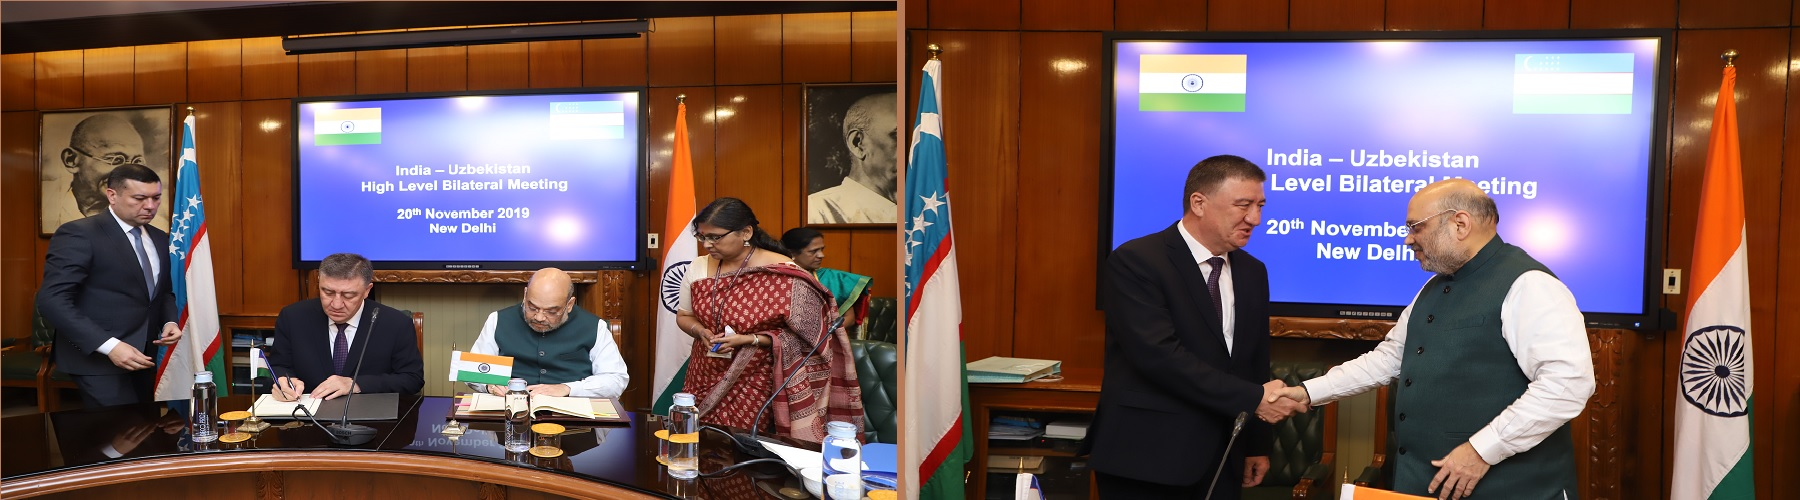 A delegation from Uzbekistan, led by Minister of Internal Affairs, Mr. Pulat Bobojonov, met the Indian delegation, led by Union Minister for Home Affairs, Shri Amit Shah, and signed the Security Cooperation Agreement, in New Delhi, on November 20, 2019.